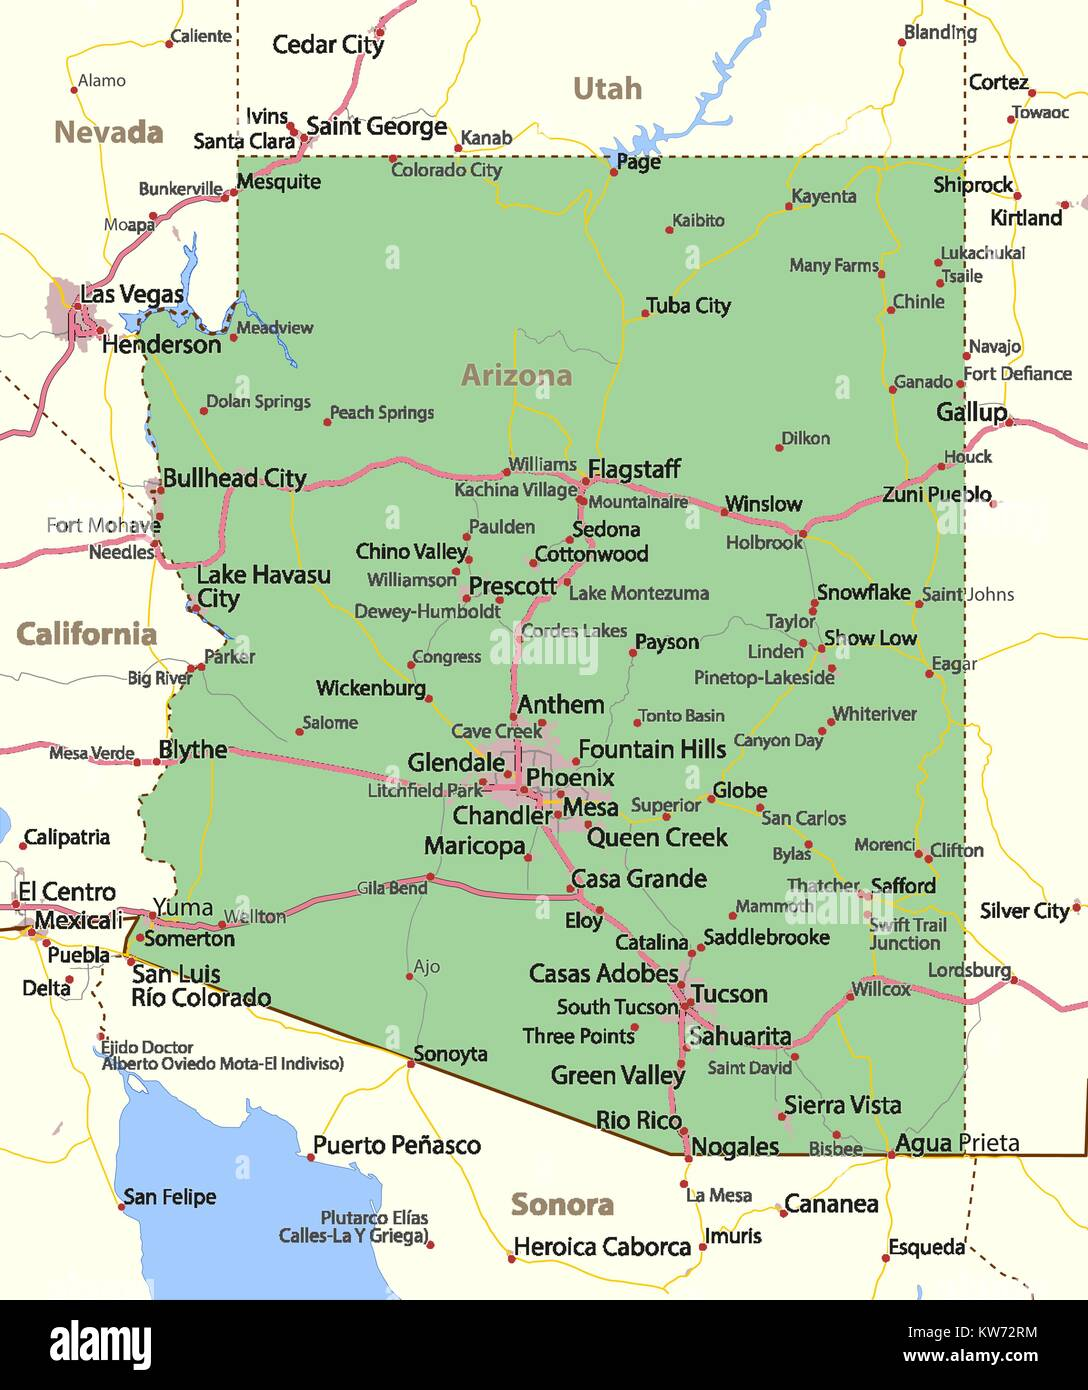 Map Of South Arizona.Map Of Arizona Shows Country Borders Urban Areas Place Names